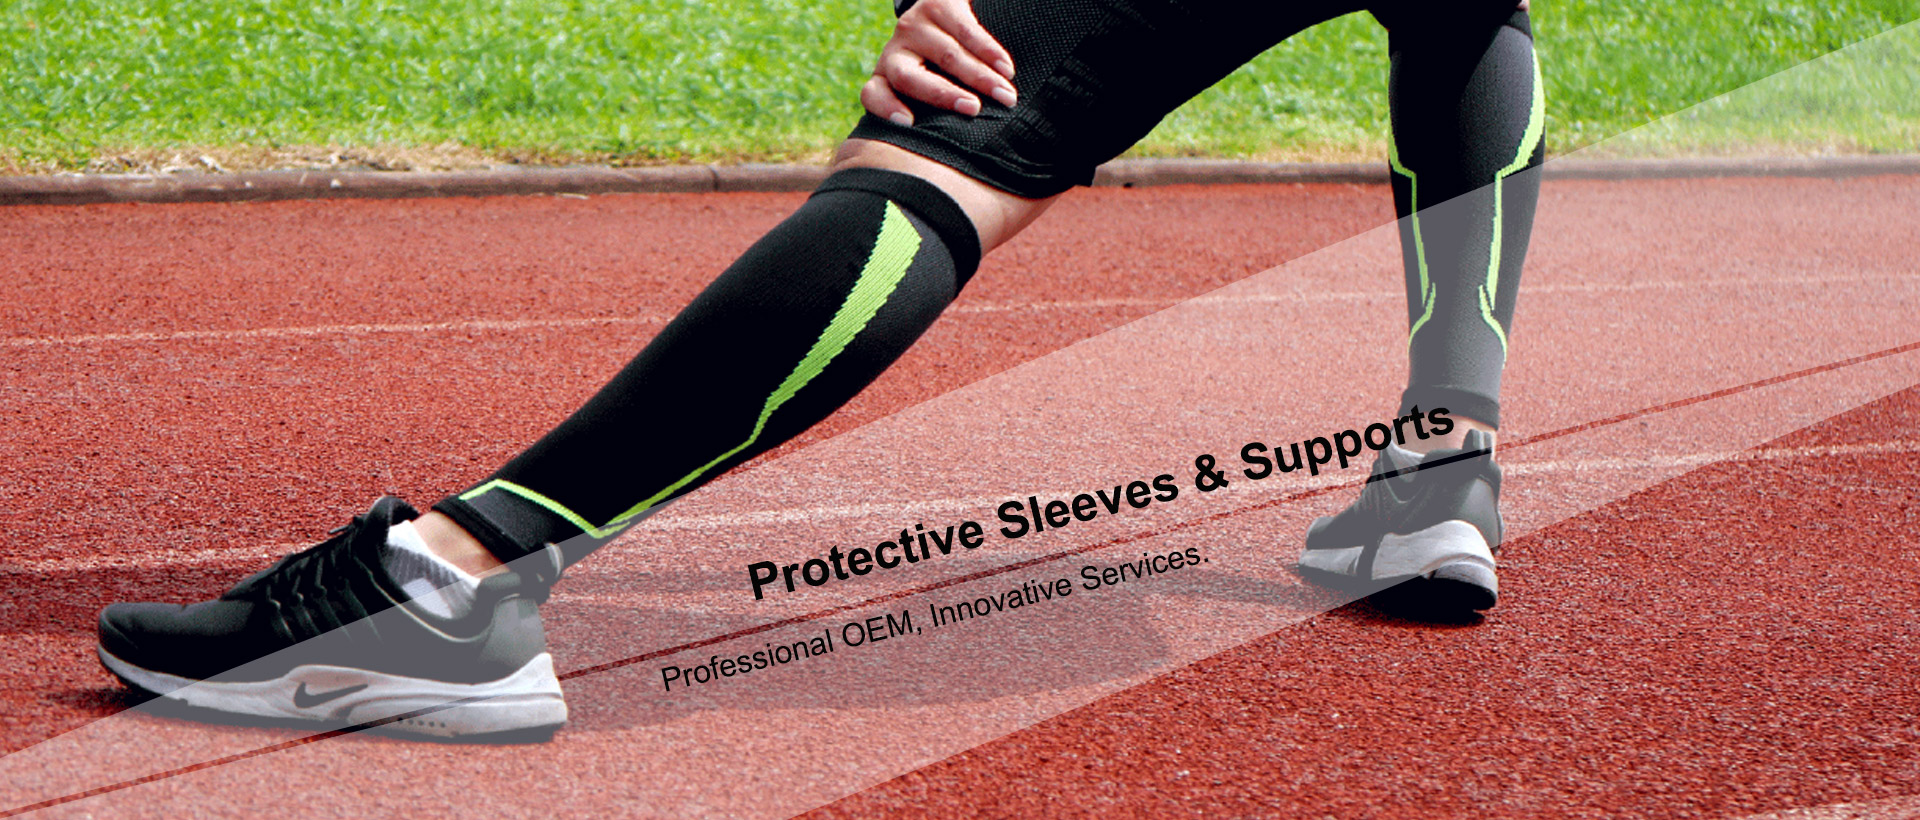 Protective Sleeves & Supports